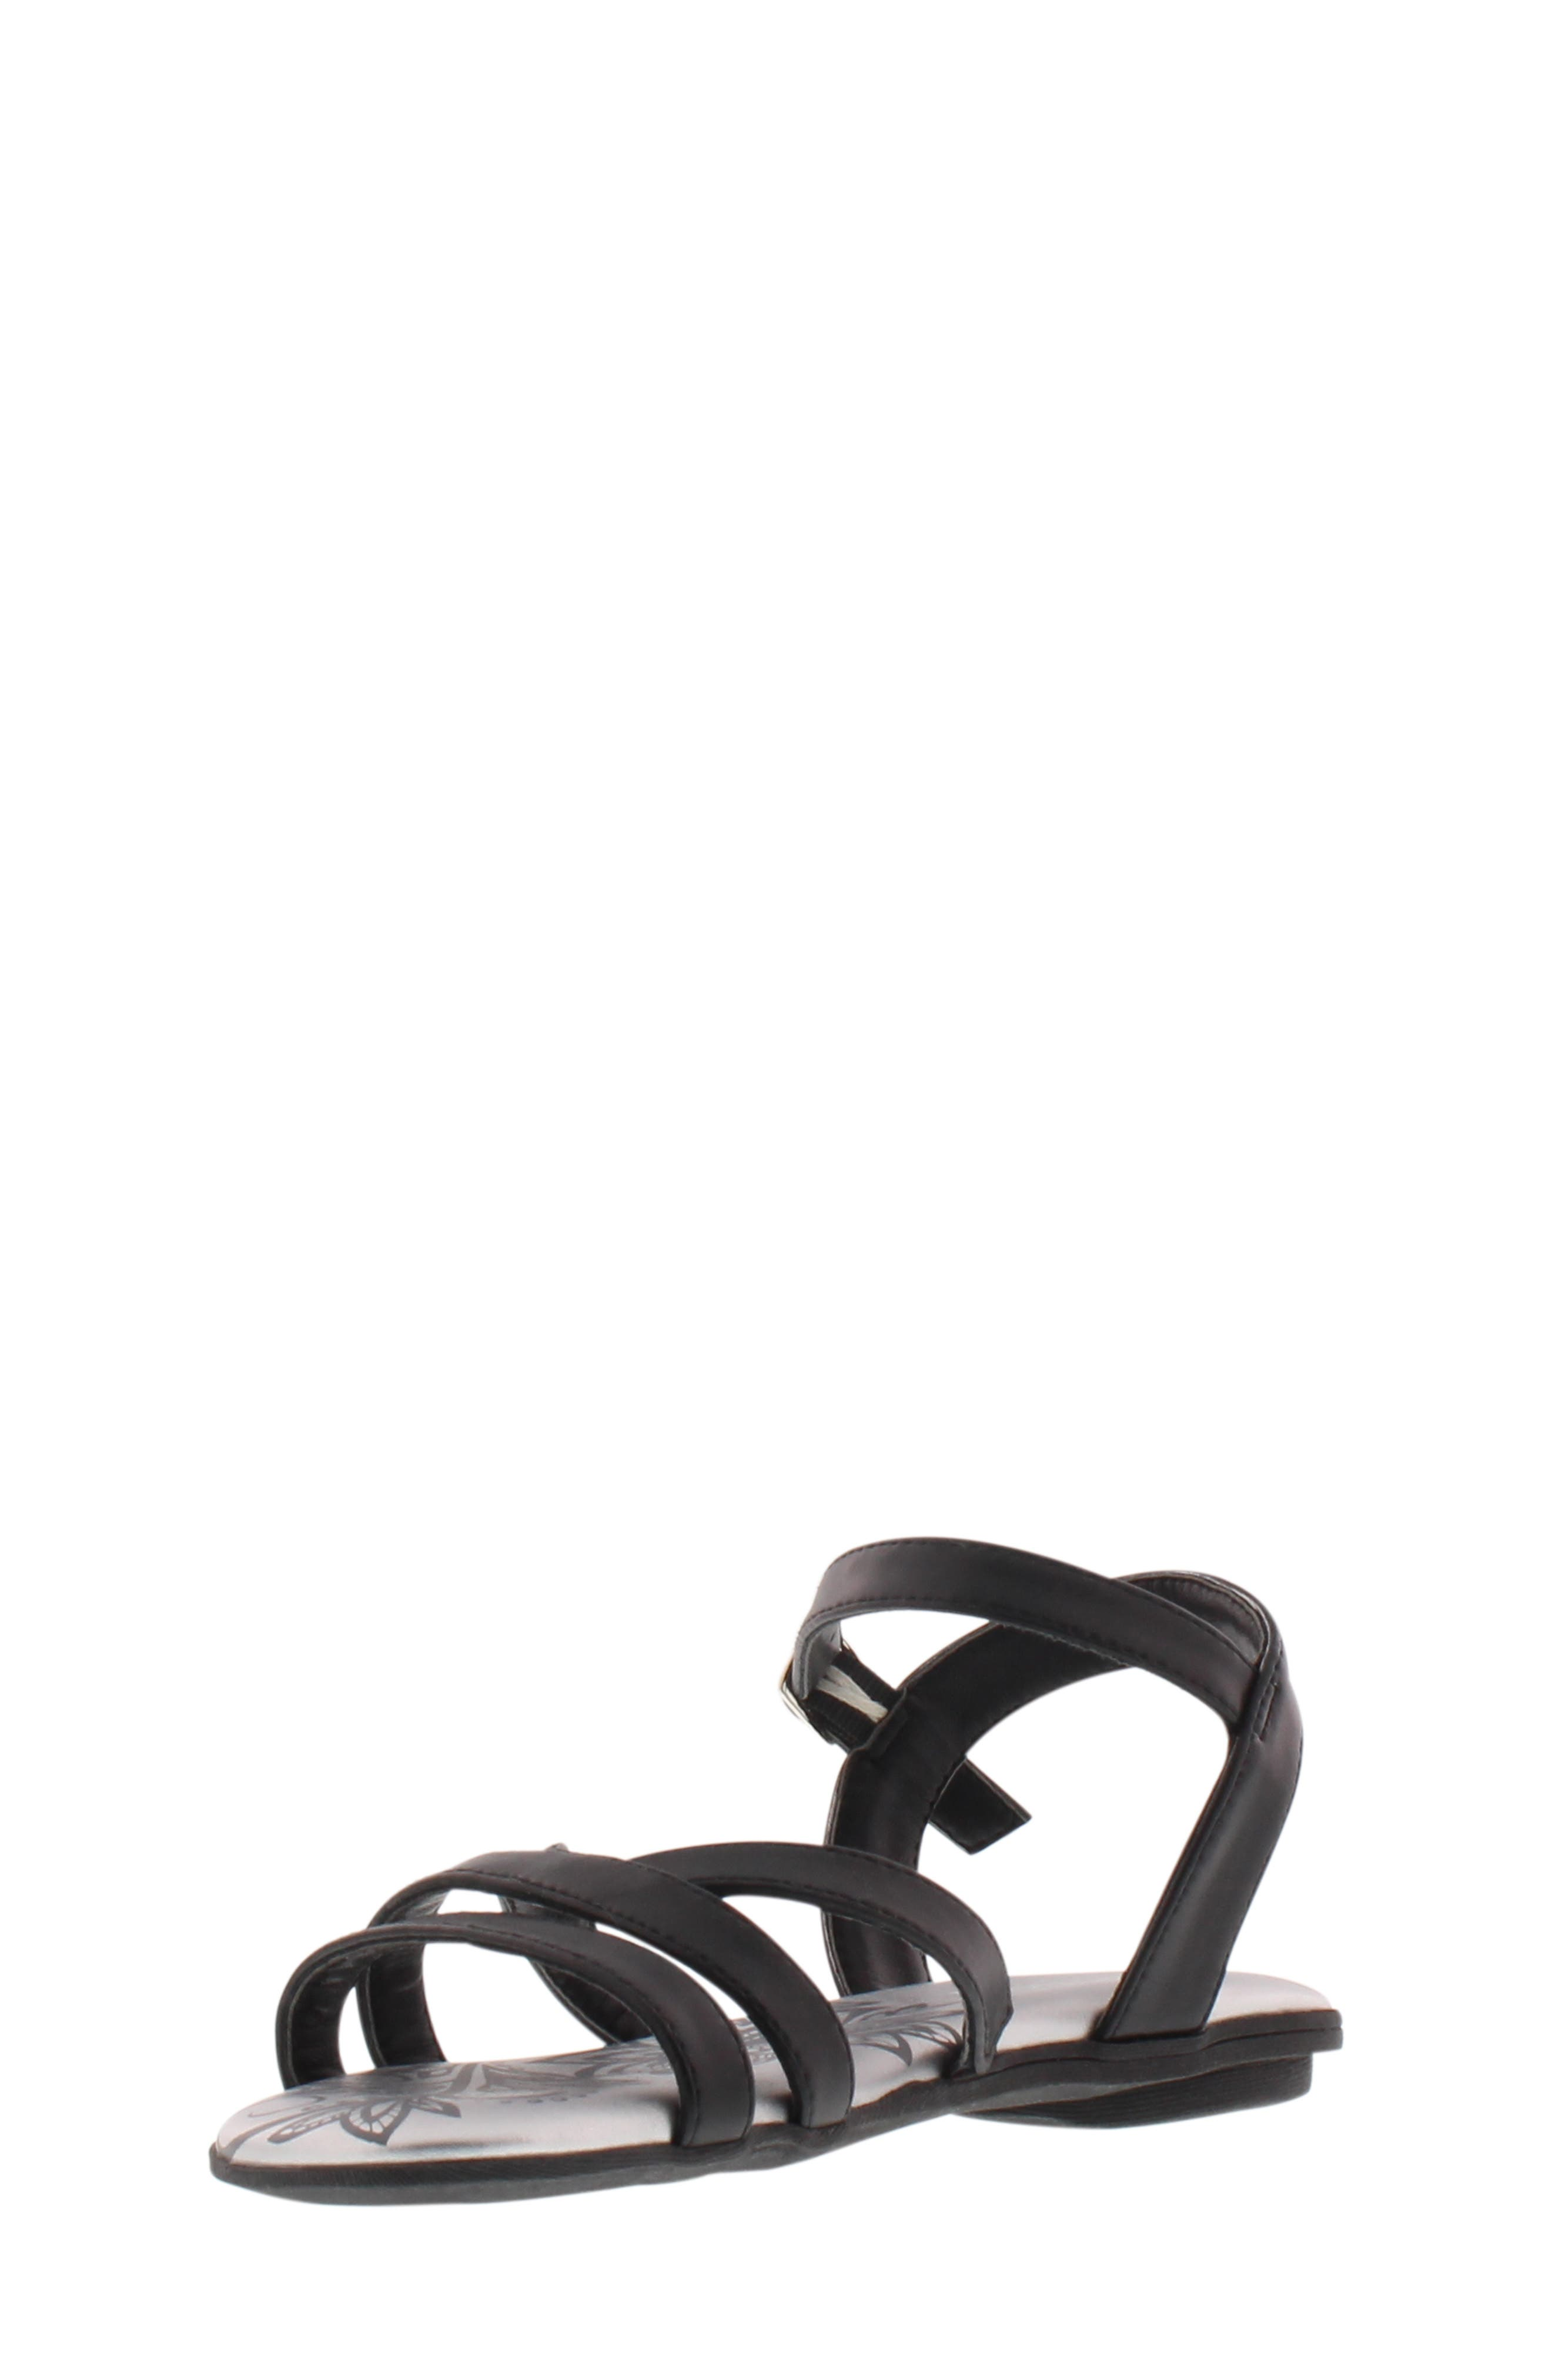 REACTION KENNETH COLE,                             Bright Lilly Strappy Sandal,                             Main thumbnail 1, color,                             BLACK